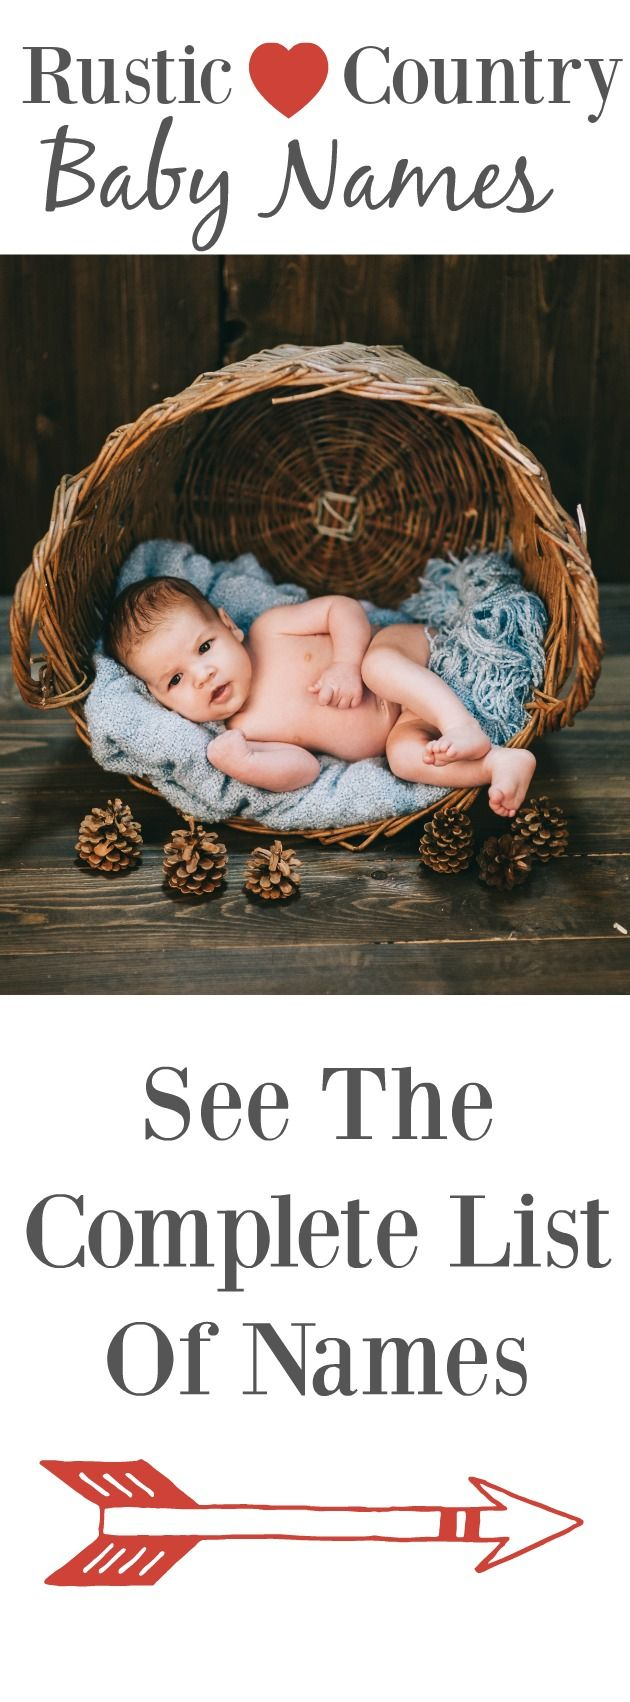 A complete list of rustic and country baby names!